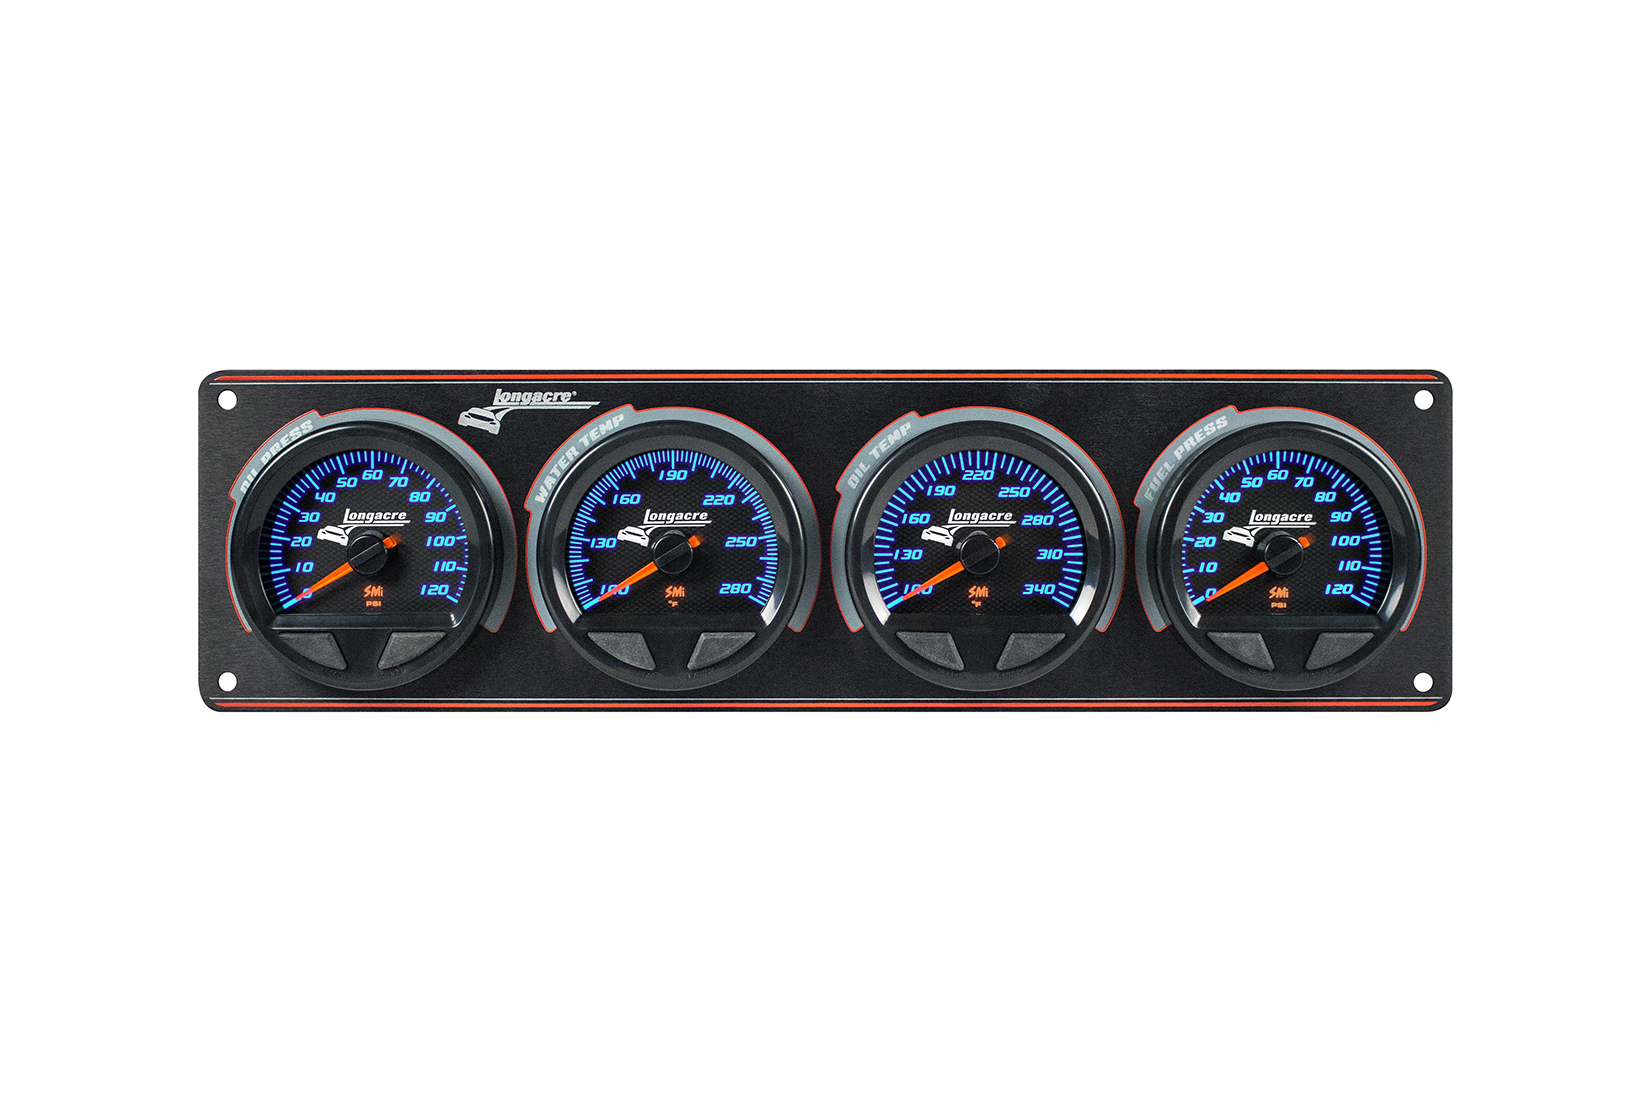 SMi™ Elite Waterproof Gauge Panel, 4 Gauge Oil Pressure/Water Temperature/Oil Temperature/Fuel Pressure 120psi